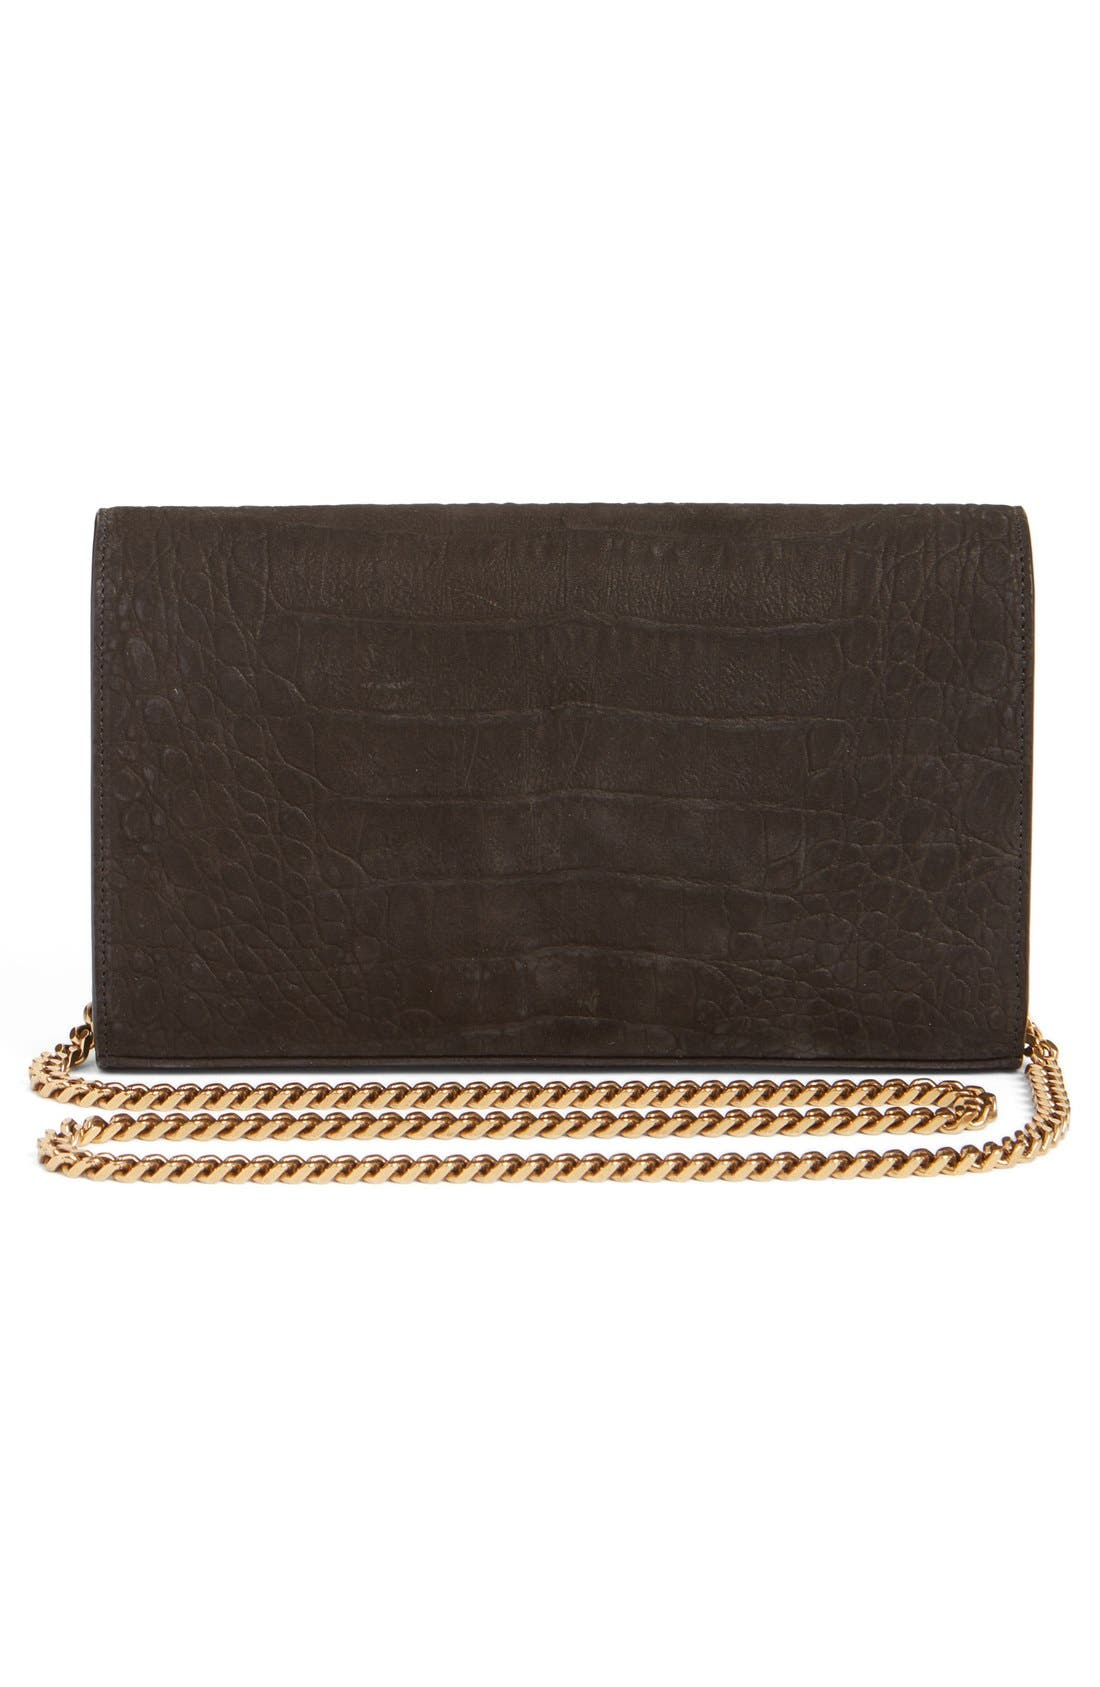 Alternate Image 2  - Saint Laurent 'Small Kate - Tree' Croc Embossed Calfskin Leather Wallet on a Chain